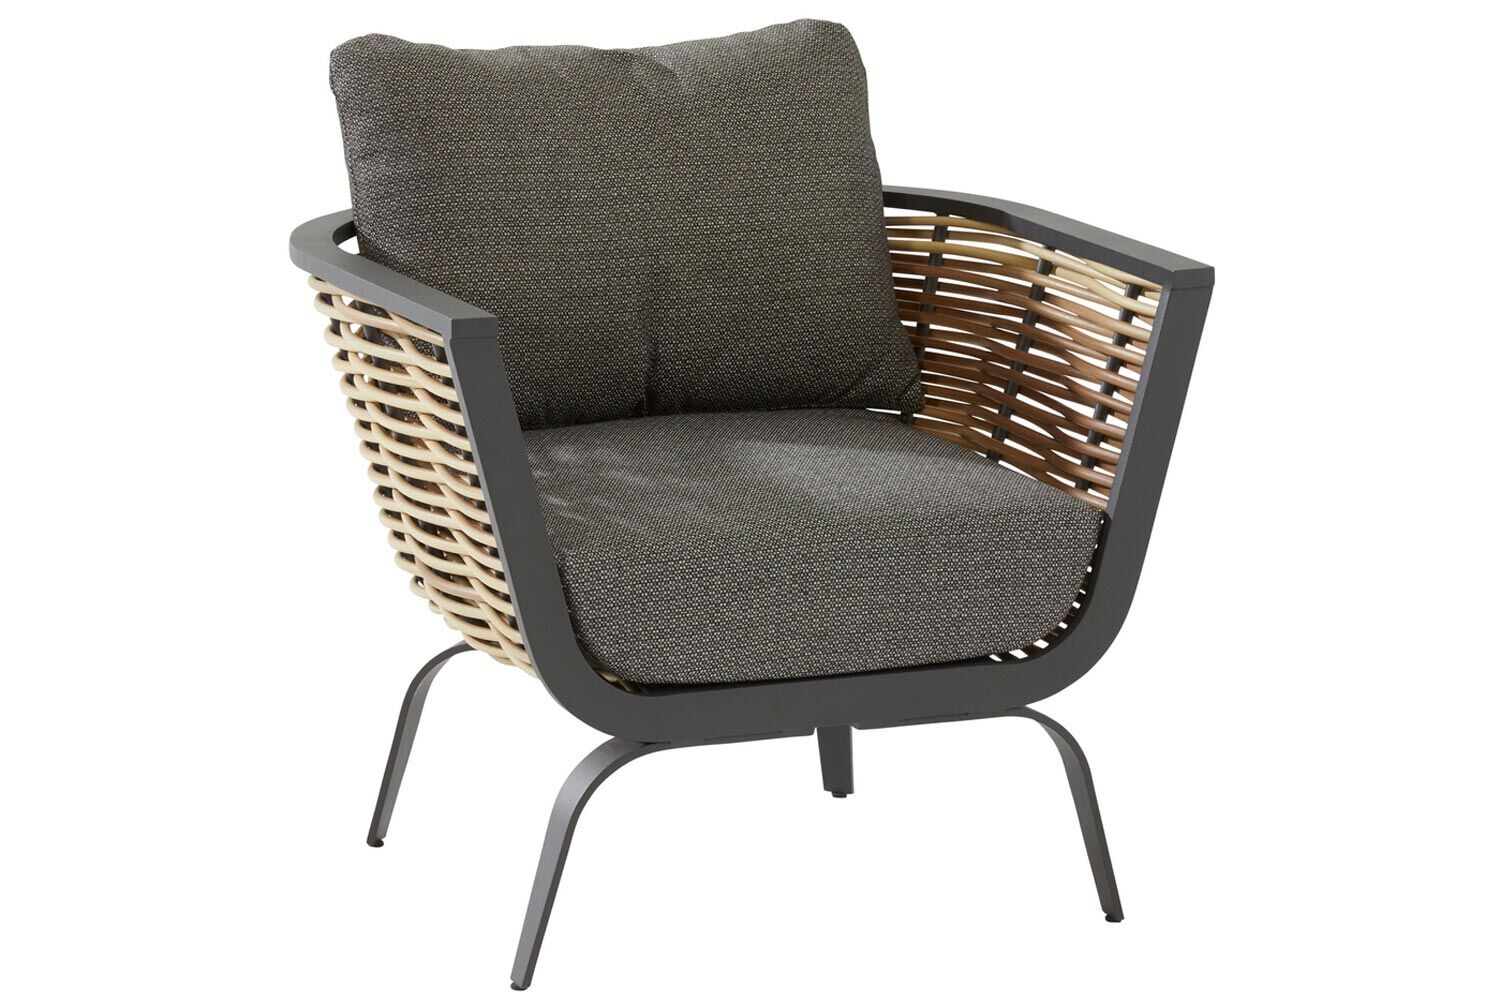 4 Seasons Outdoor Antibes living chair with 2 cushions